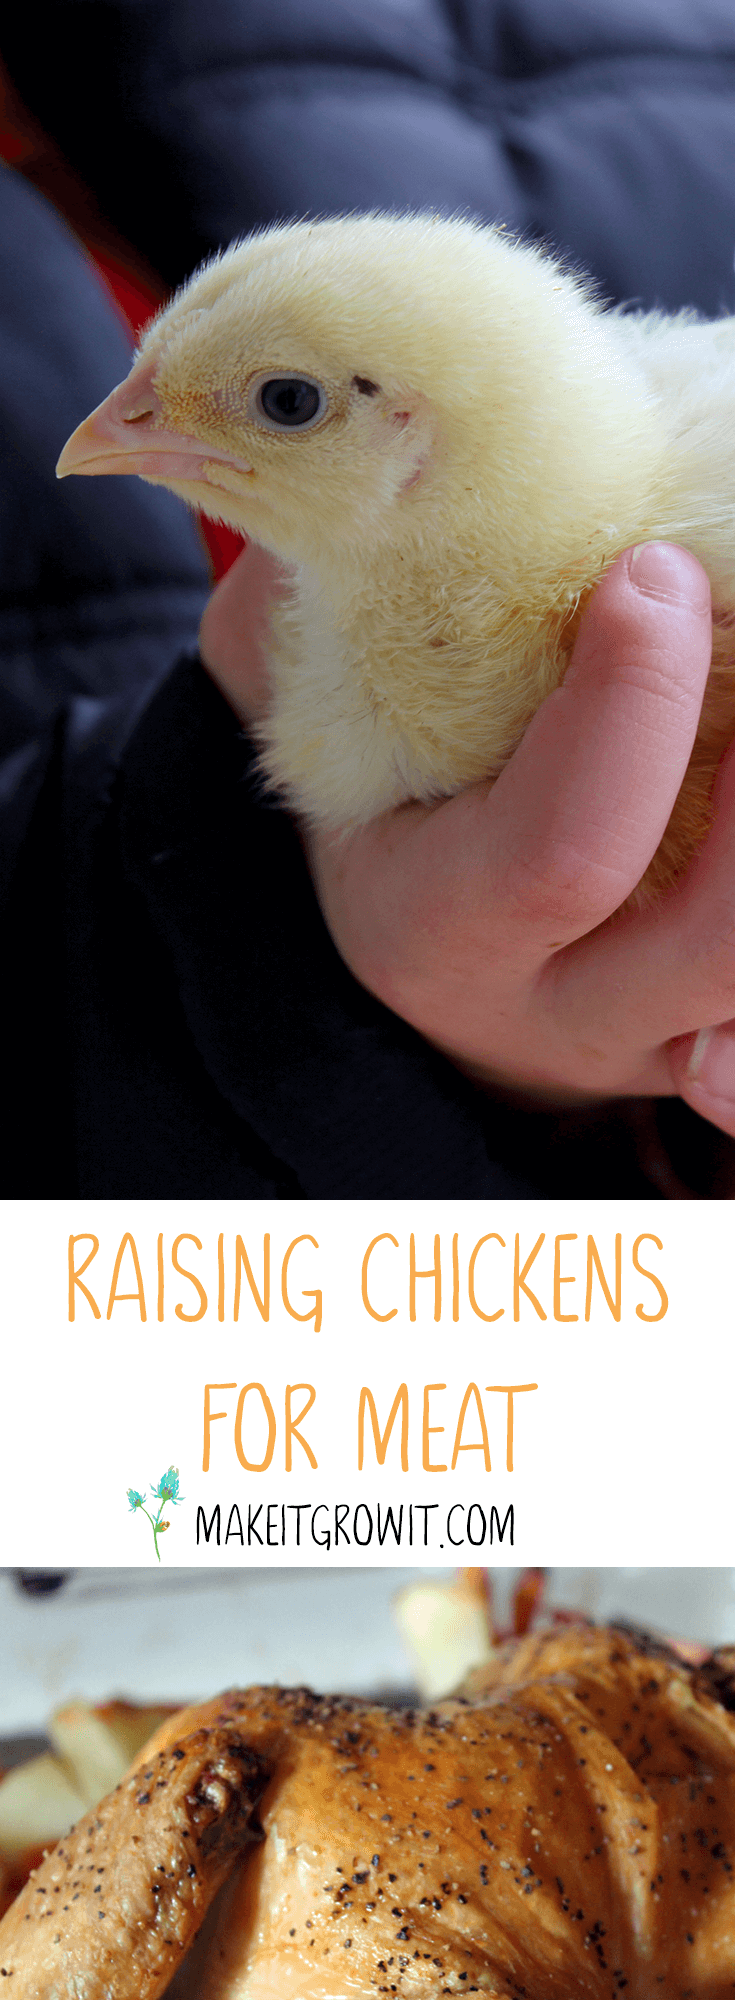 Raising Chickens for Meat by Make It. Grow It. - A quick guide to selecting, brooding, and raising healthy, happy chickens for meat. Click through to read the guide or Pin It to save for later.